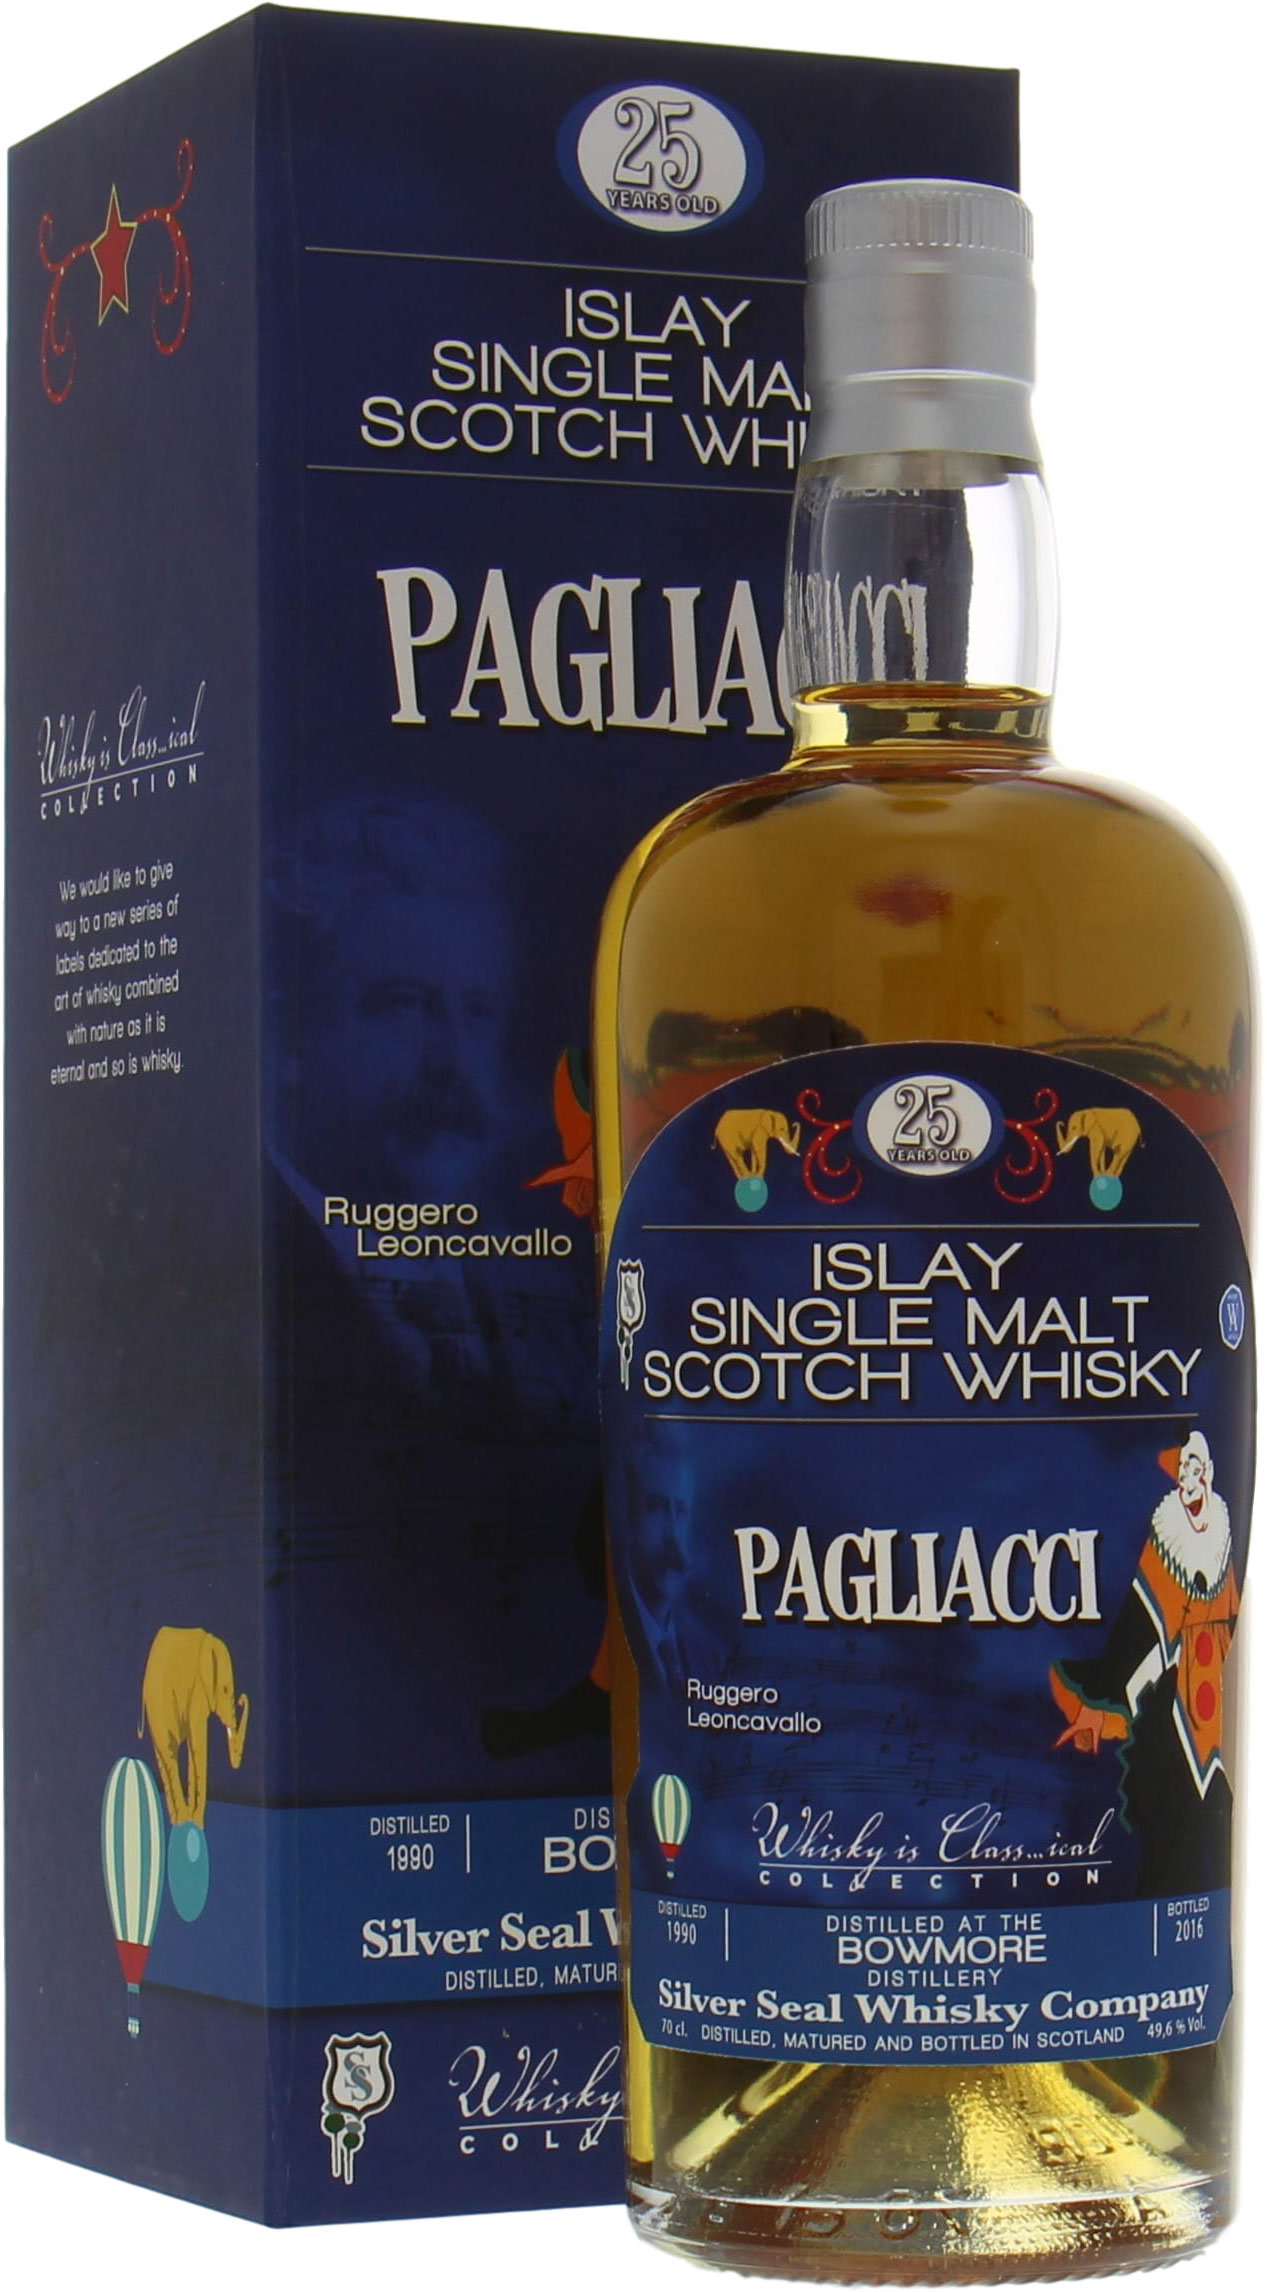 Bowmore - 25 Years Silver Seal Ruggero Leoncavallo Pagliacci 49.6%